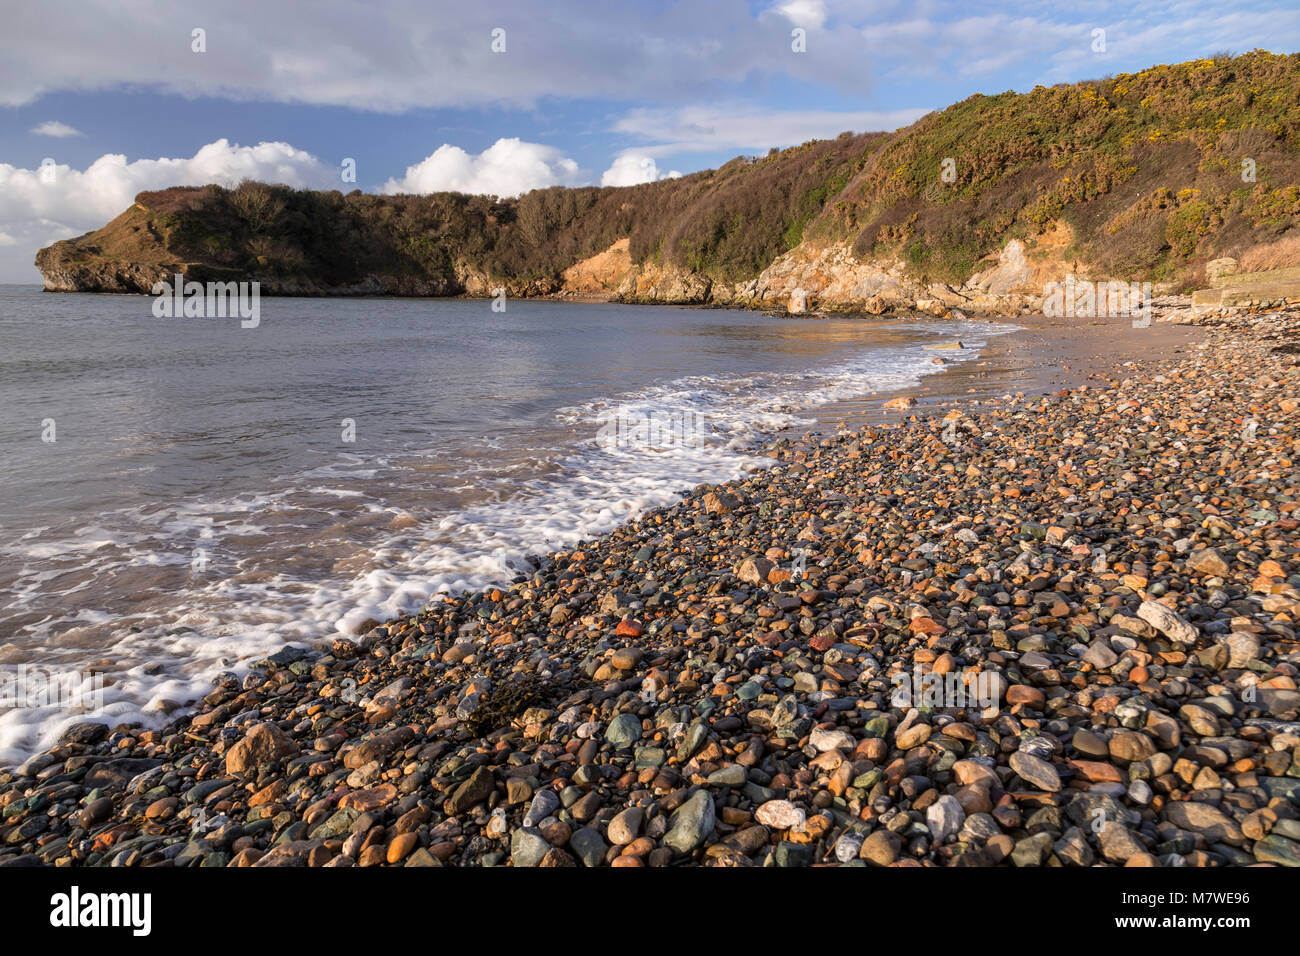 Pebble beach at Cemaes Bay, Anglesey, North Wales coastStock Photo